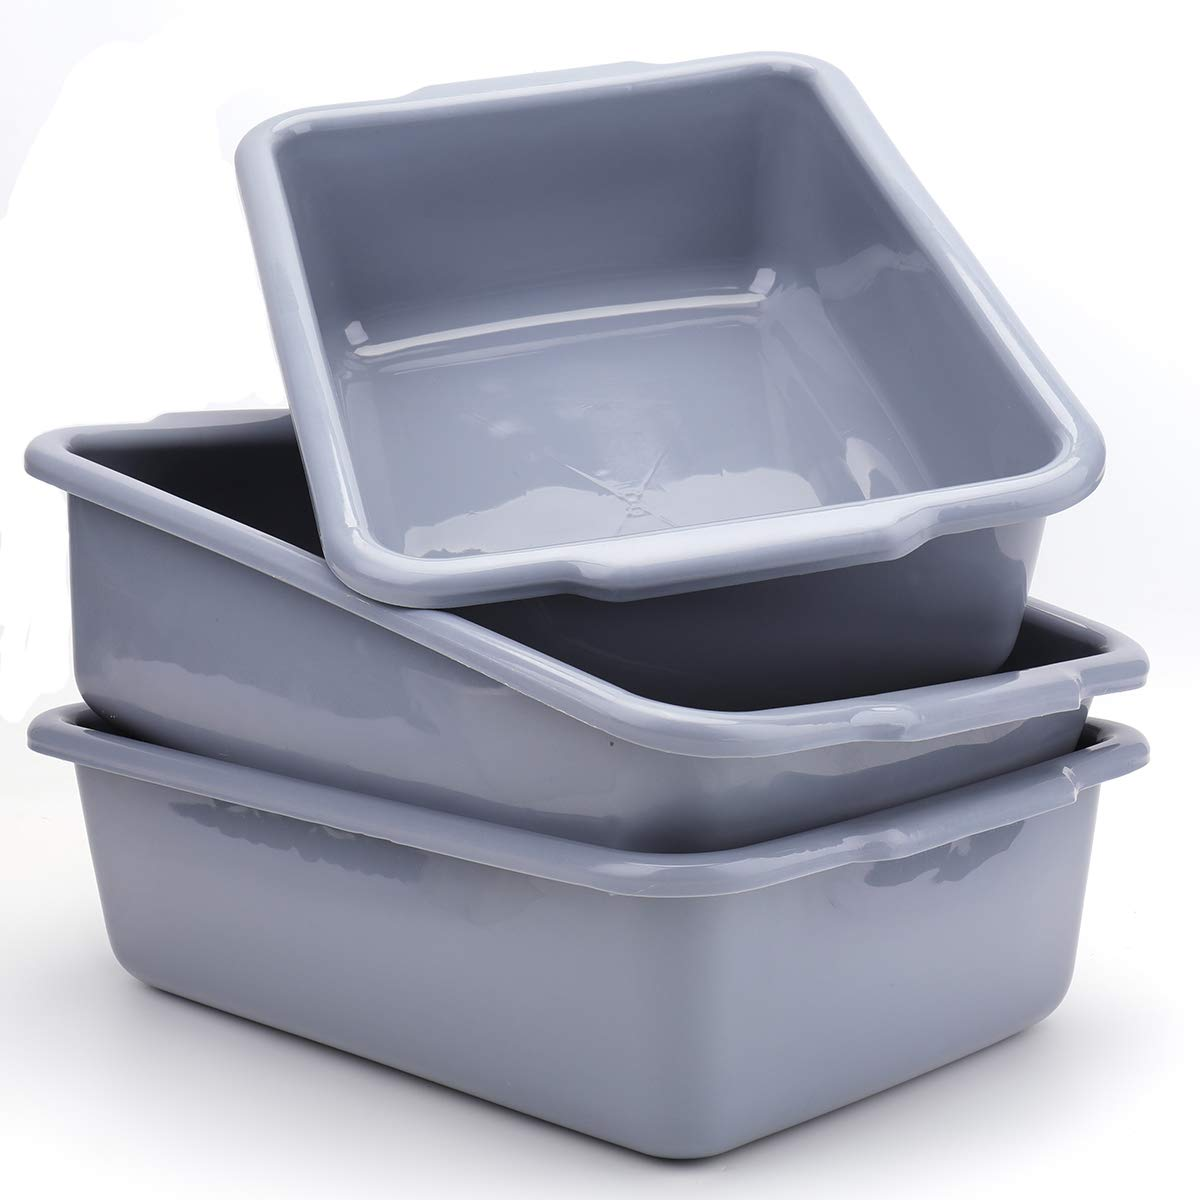 Bekith 3 Pack Plastic Dish Tubs, 13L Commercial Bus Box Wash Tub Basin Tote Box, Grey